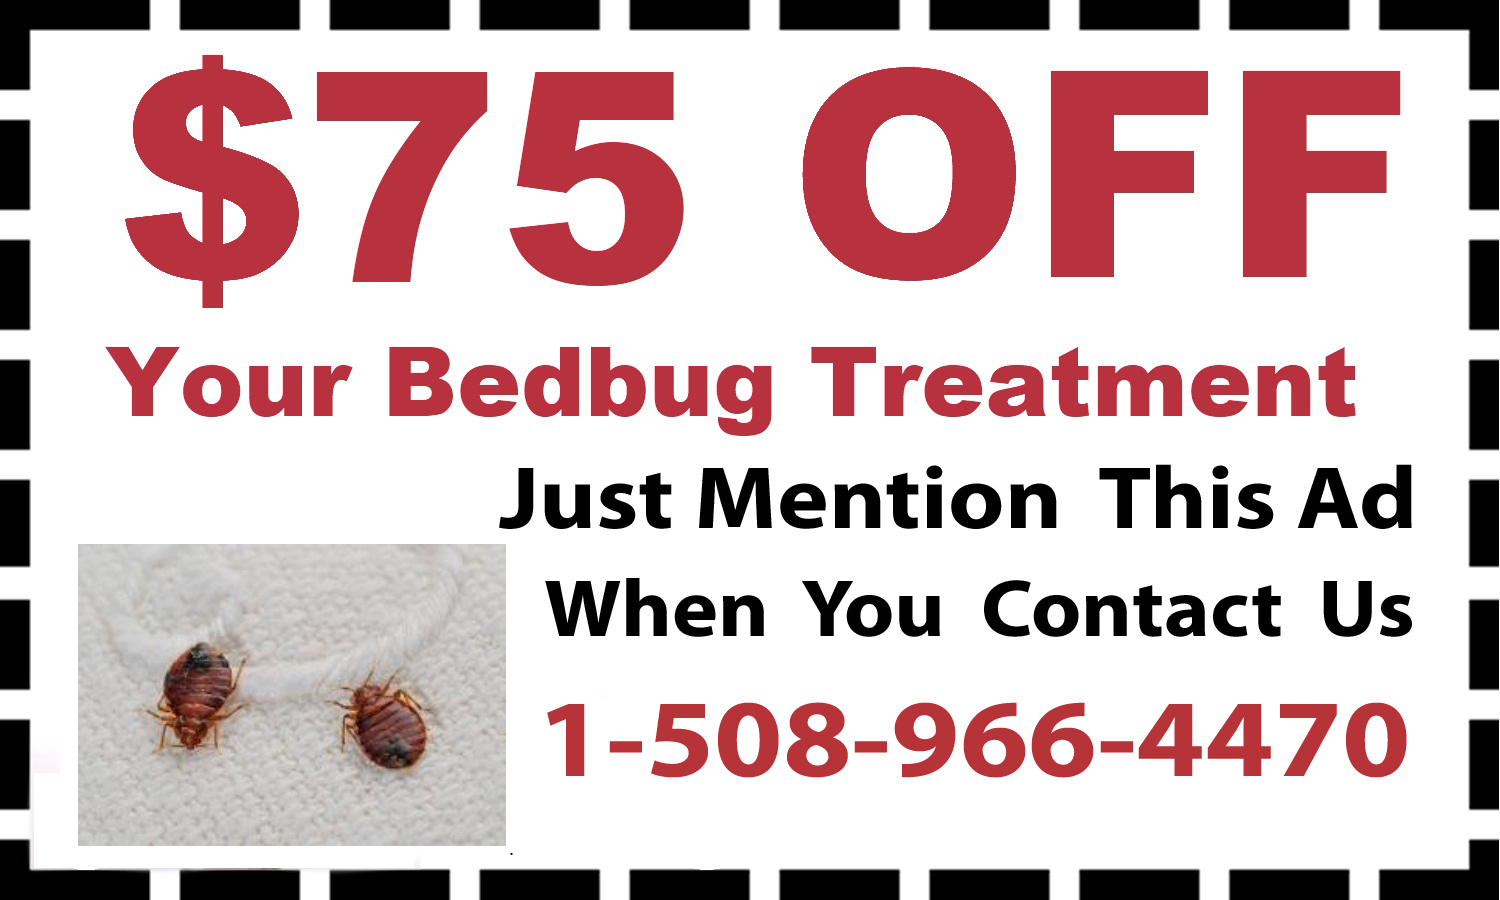 BedBug Treatment Natick, MA